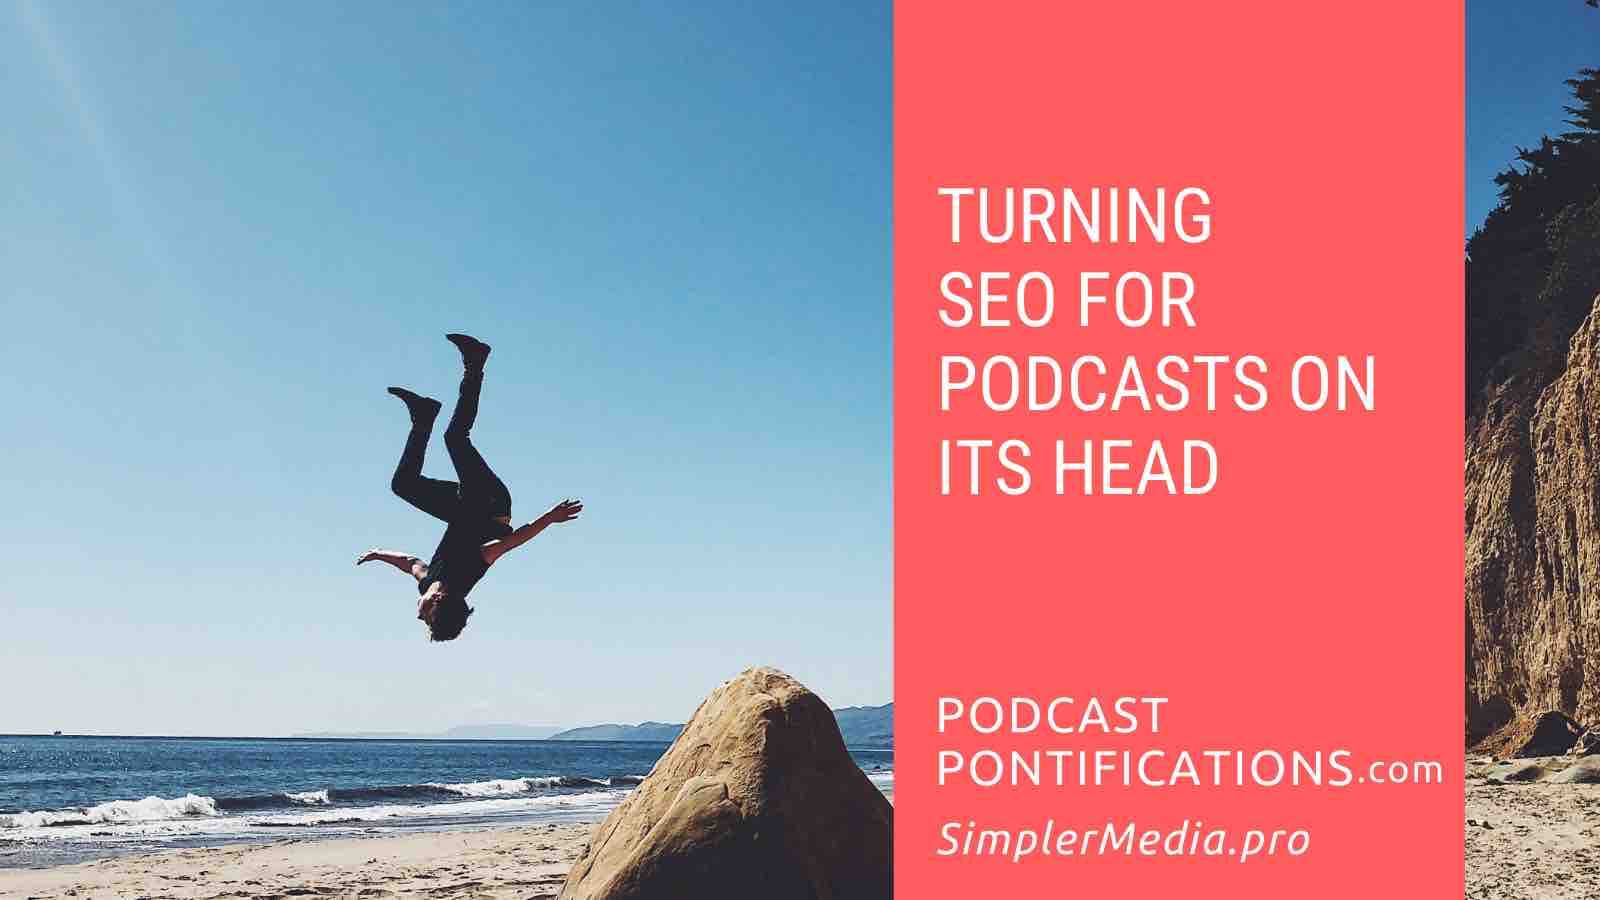 Turning SEO for Podcasts On Its Head